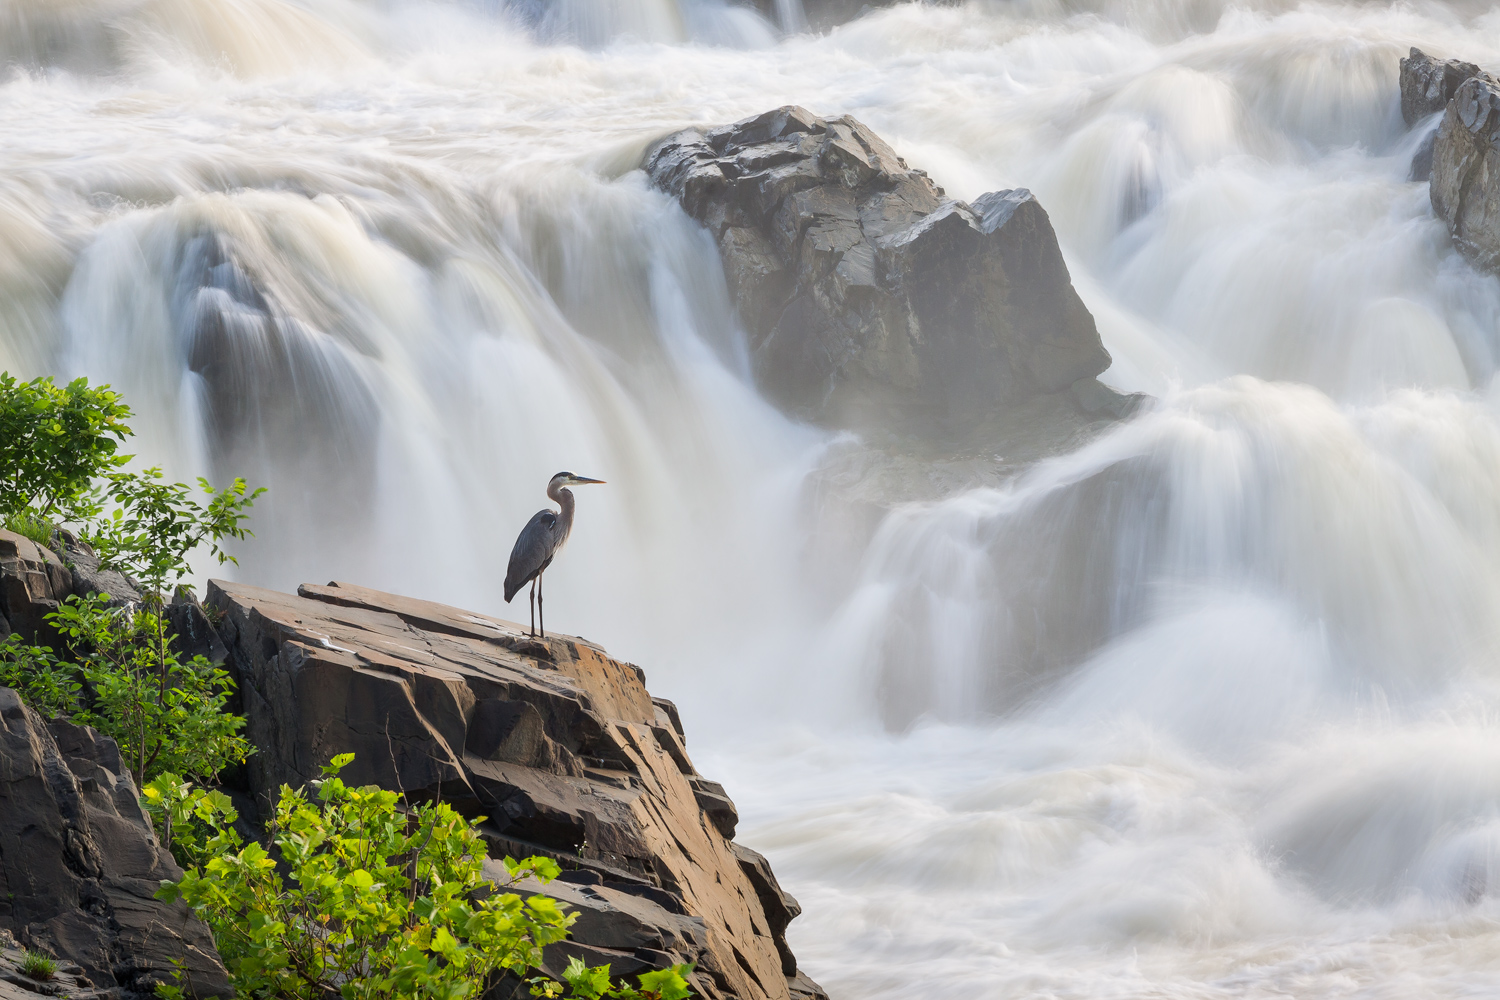 """""""Silence in Chaos"""" - A great blue heron standing among the raging waters of the Potomac River. Great Falls National Park, Virginia."""